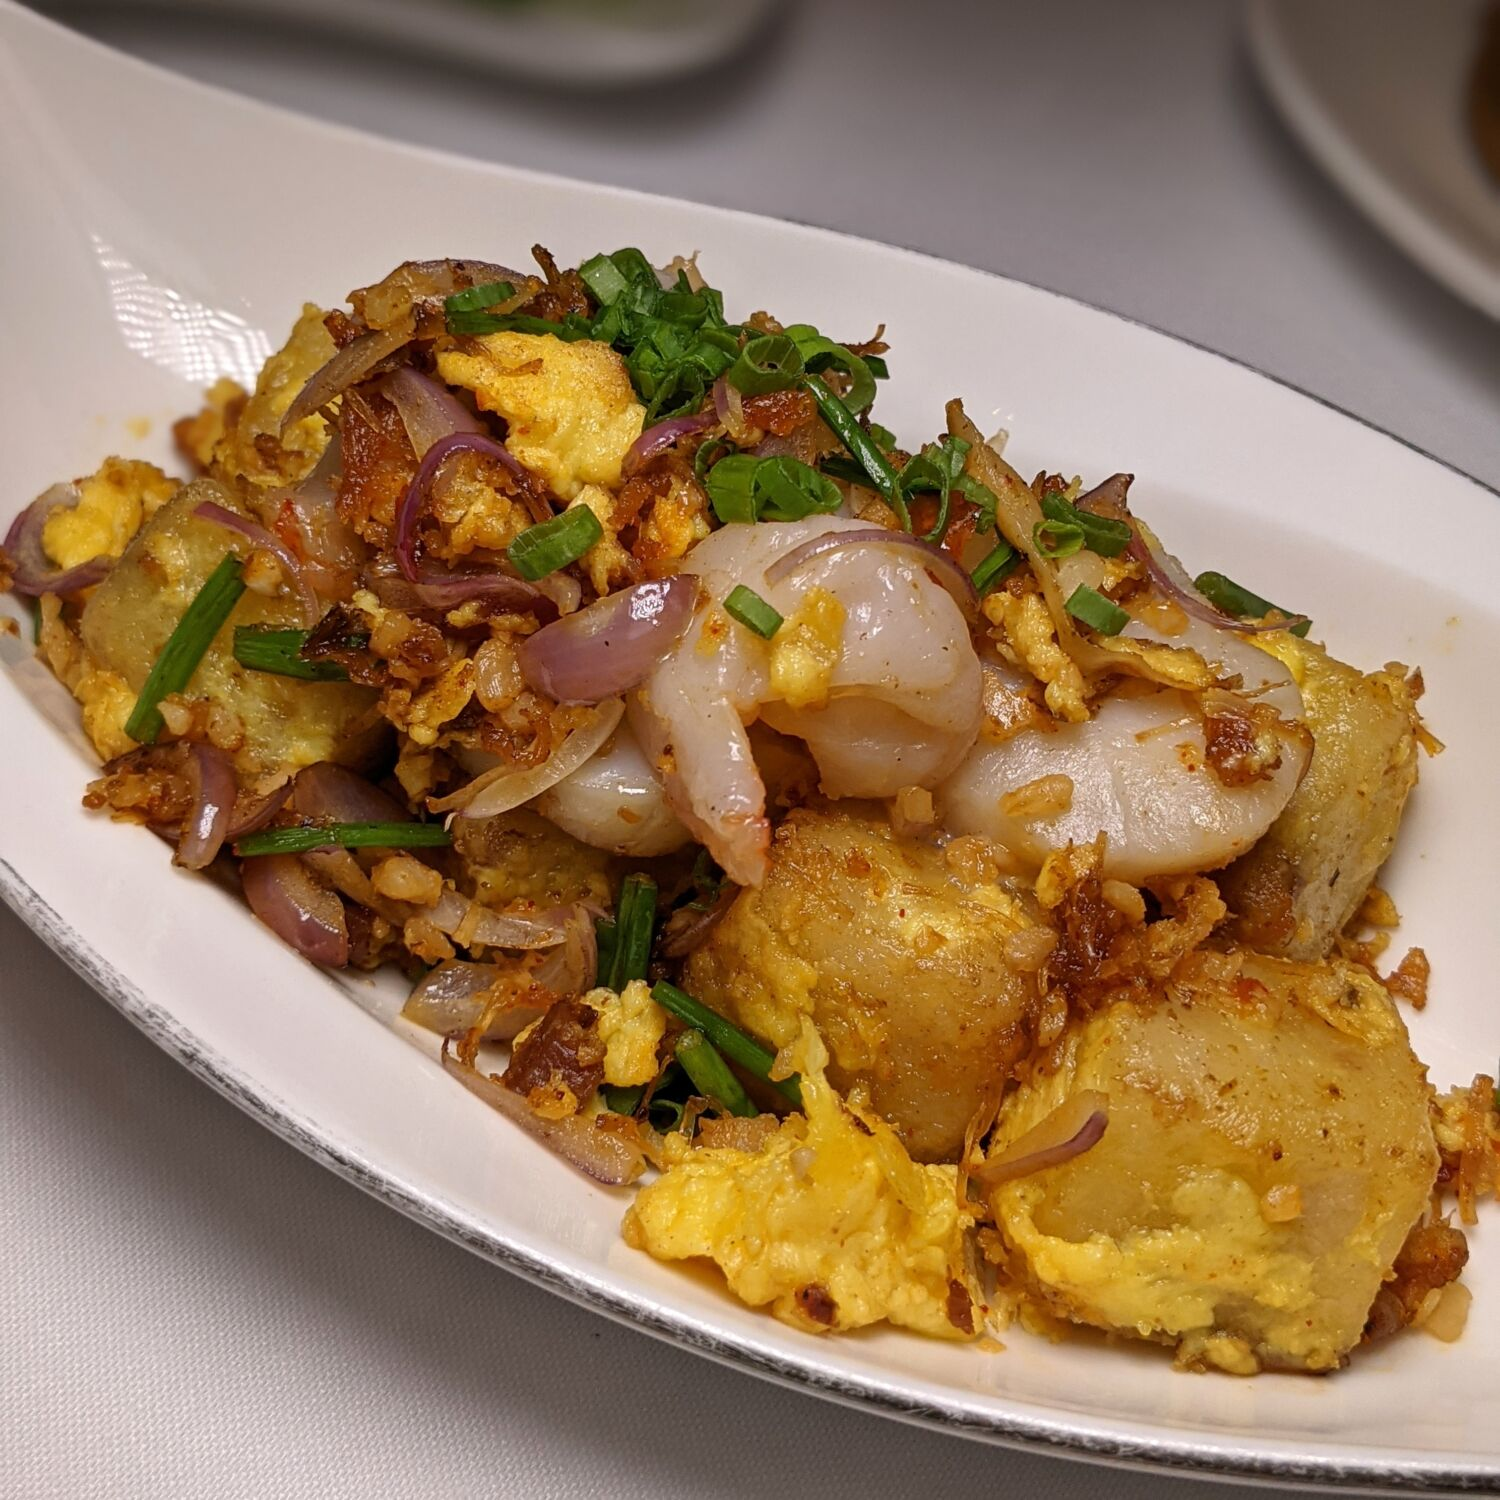 Capella Singapore Cassia Wok-fried Carrot Cake with Chinese Sausage, Prawn and Scallop in XO Chilli Sauce